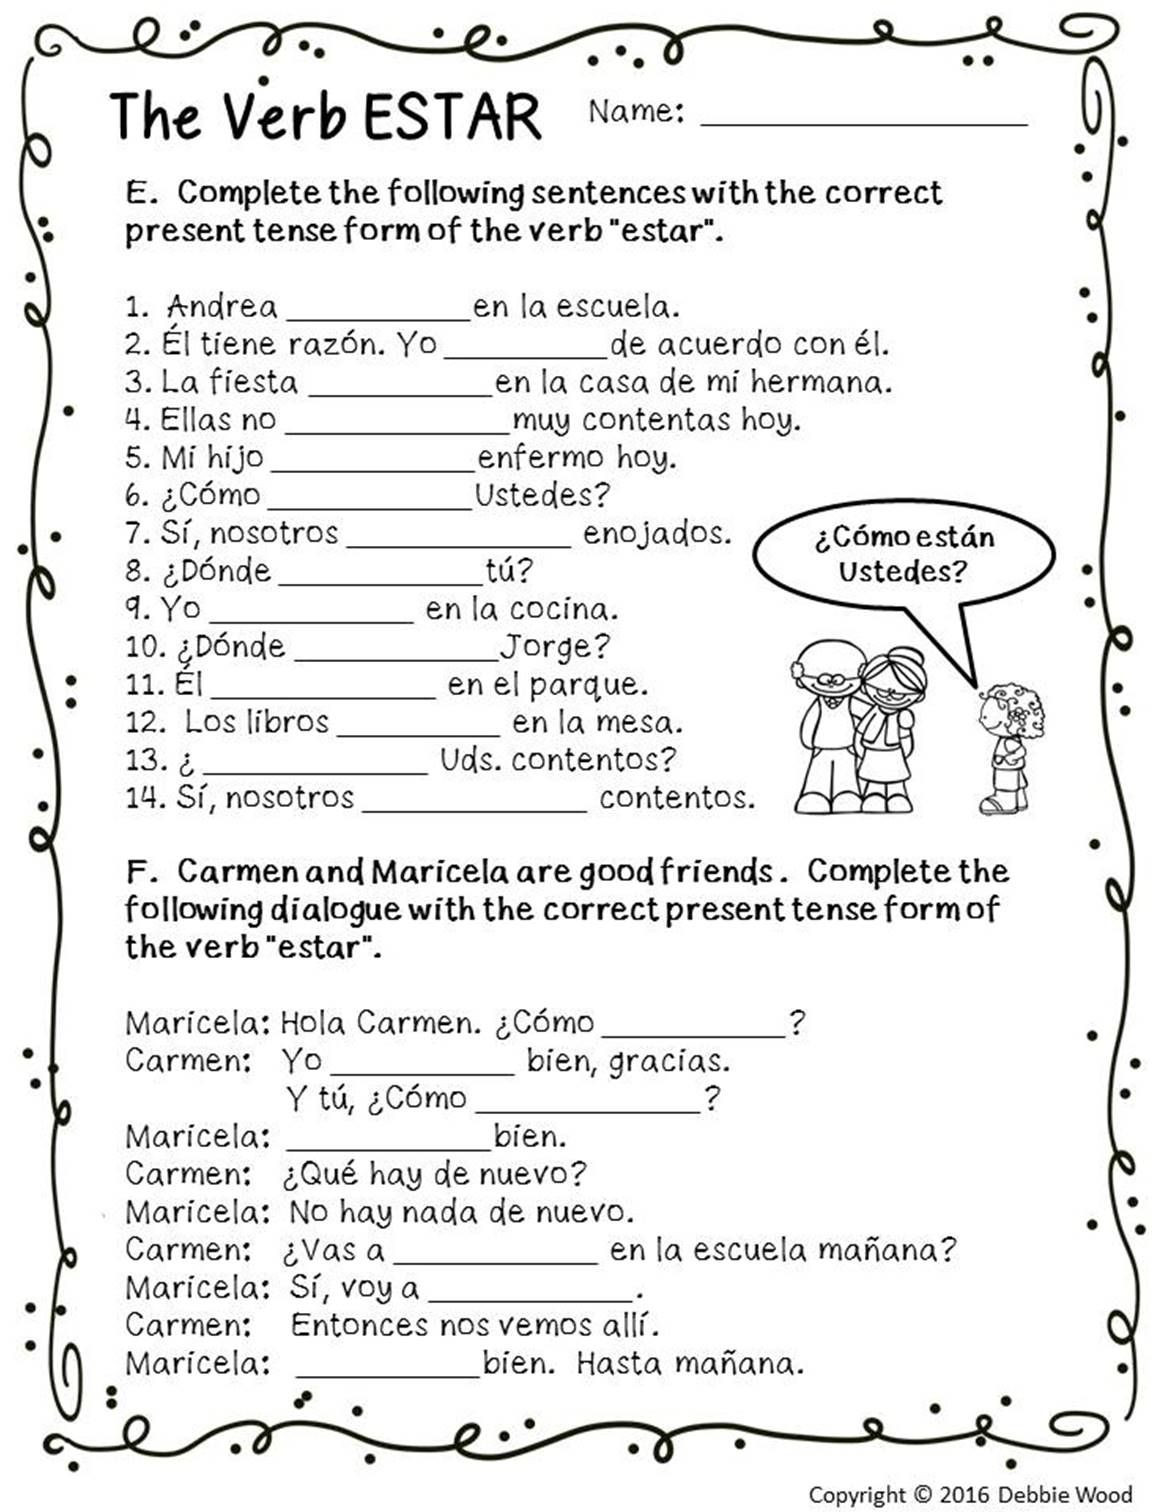 Spanish Reflexive Verbs Worksheet Printable Spanish Estar with Emotions